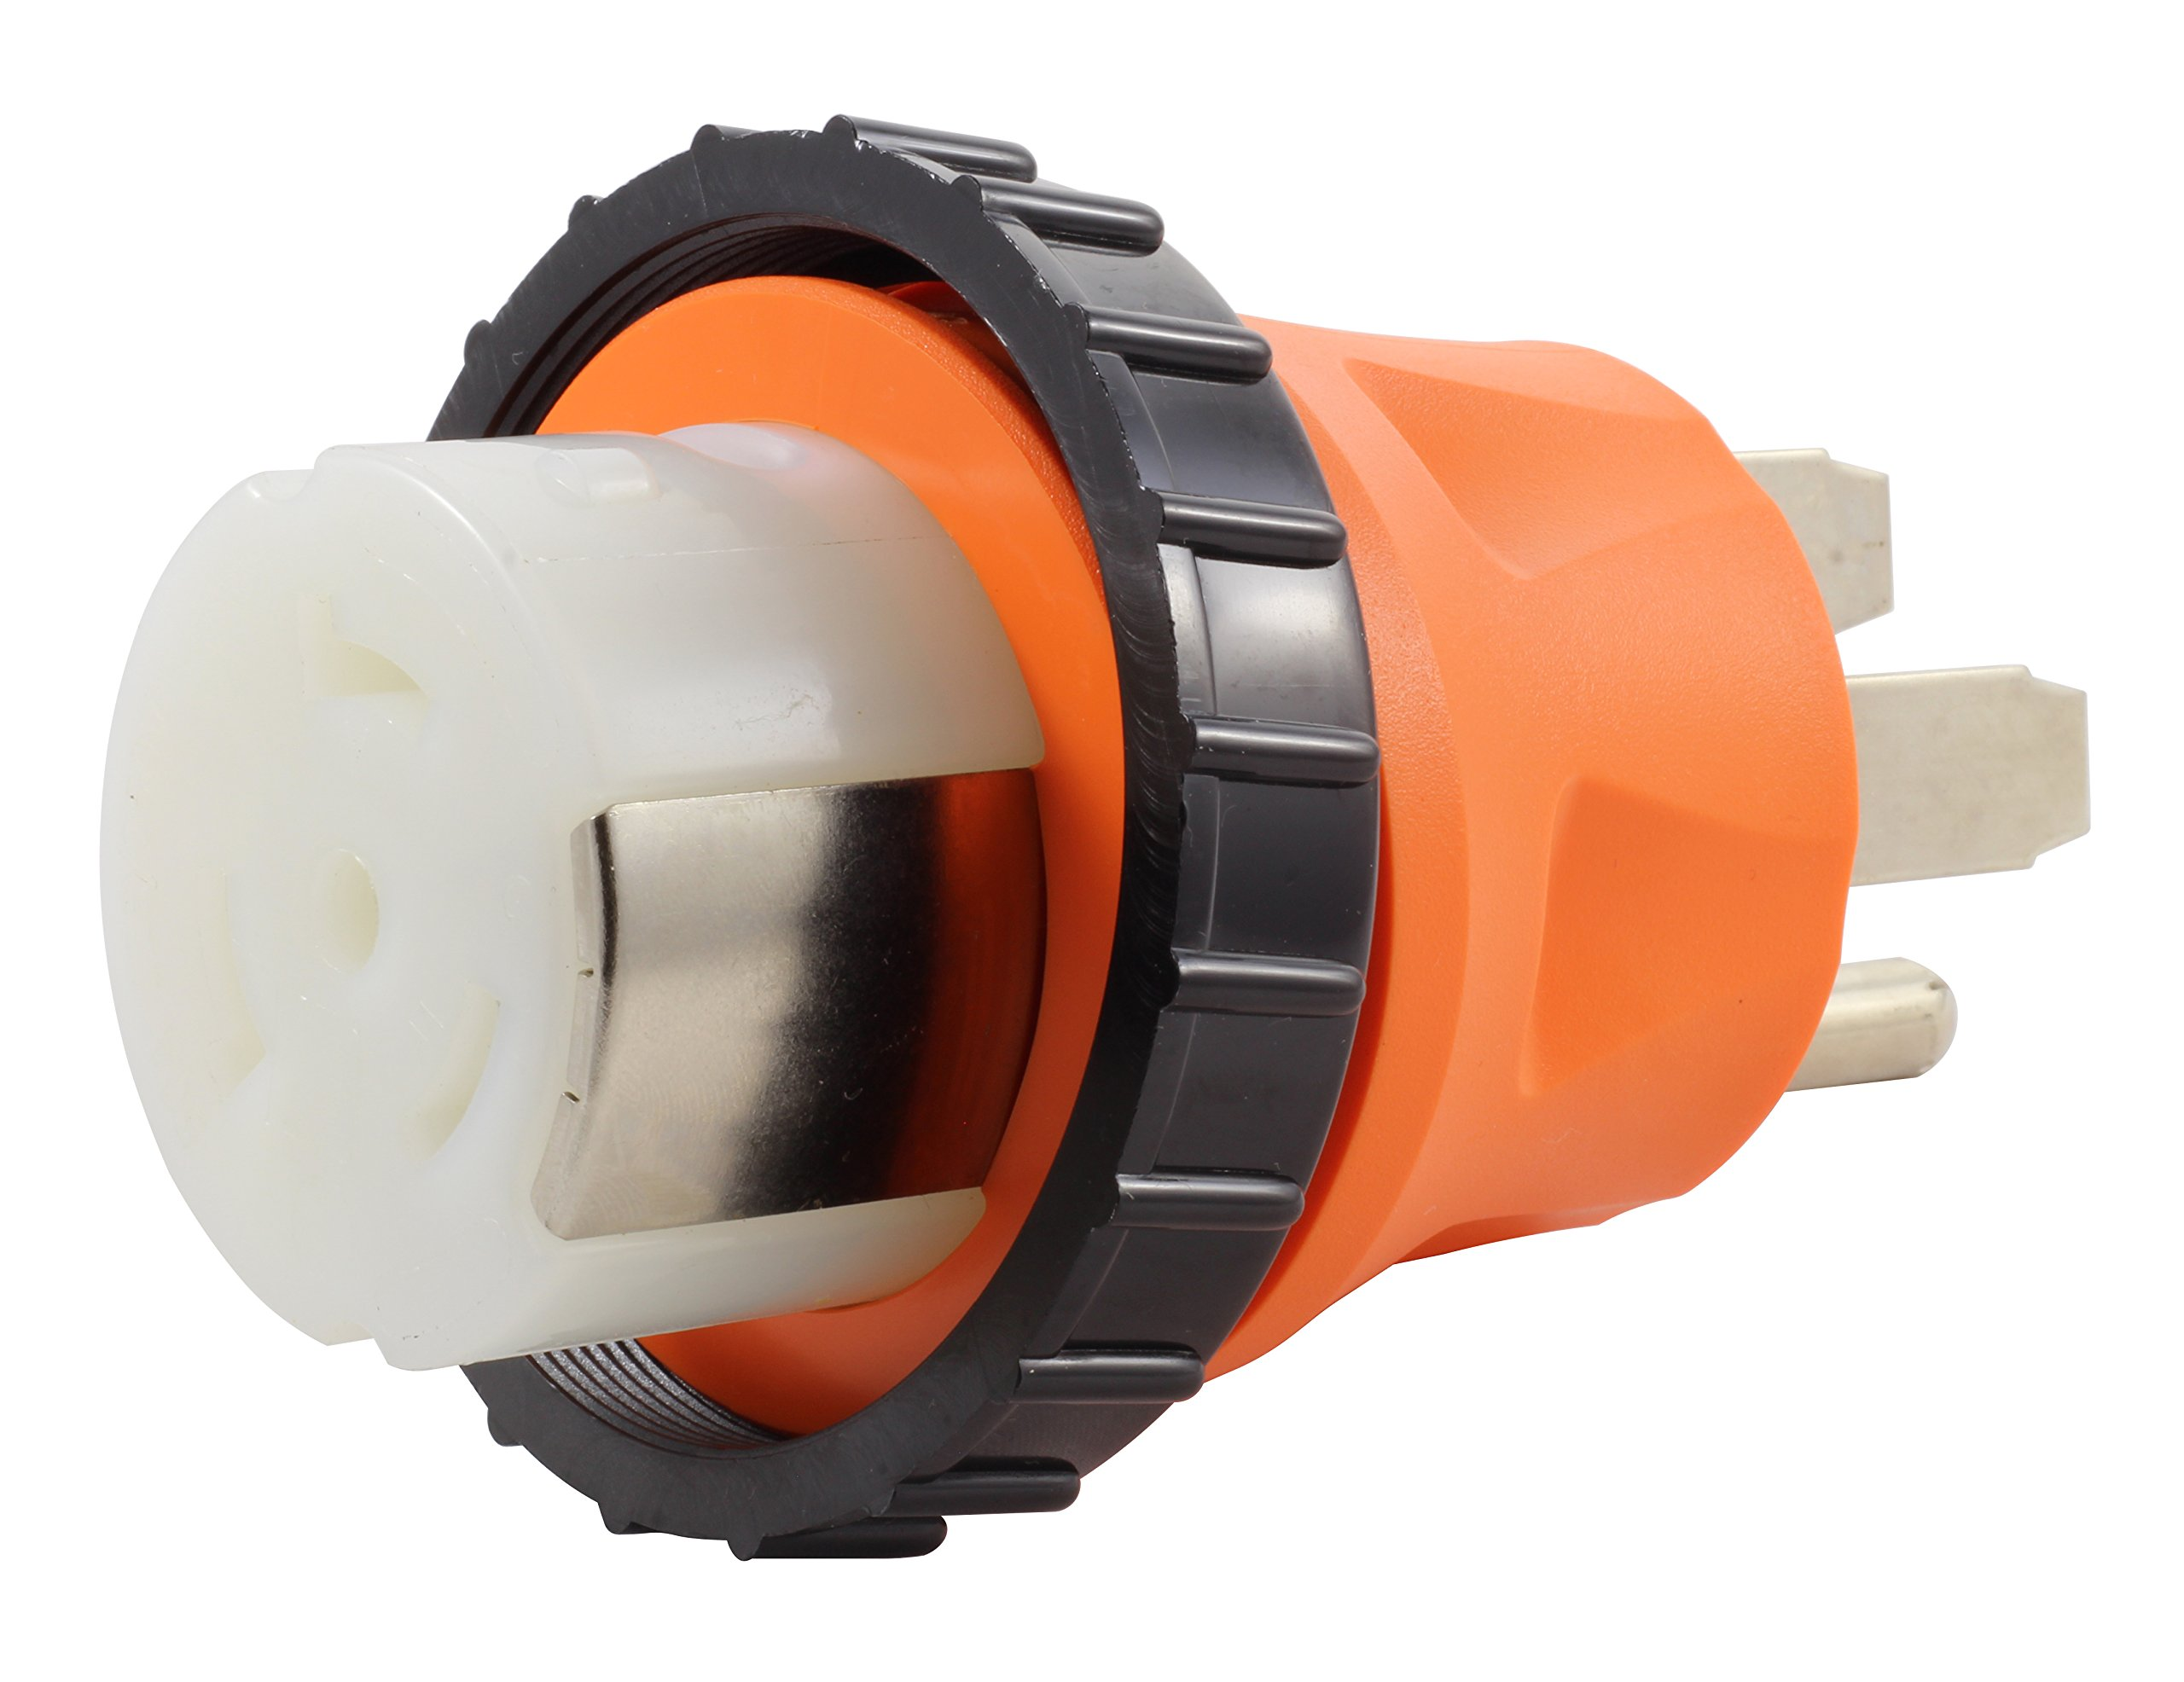 AC WORKS 50Amp RV Marine Detachable Adapter (14-50P 50A Straight Blade Plug-Compact) by AC WORKS